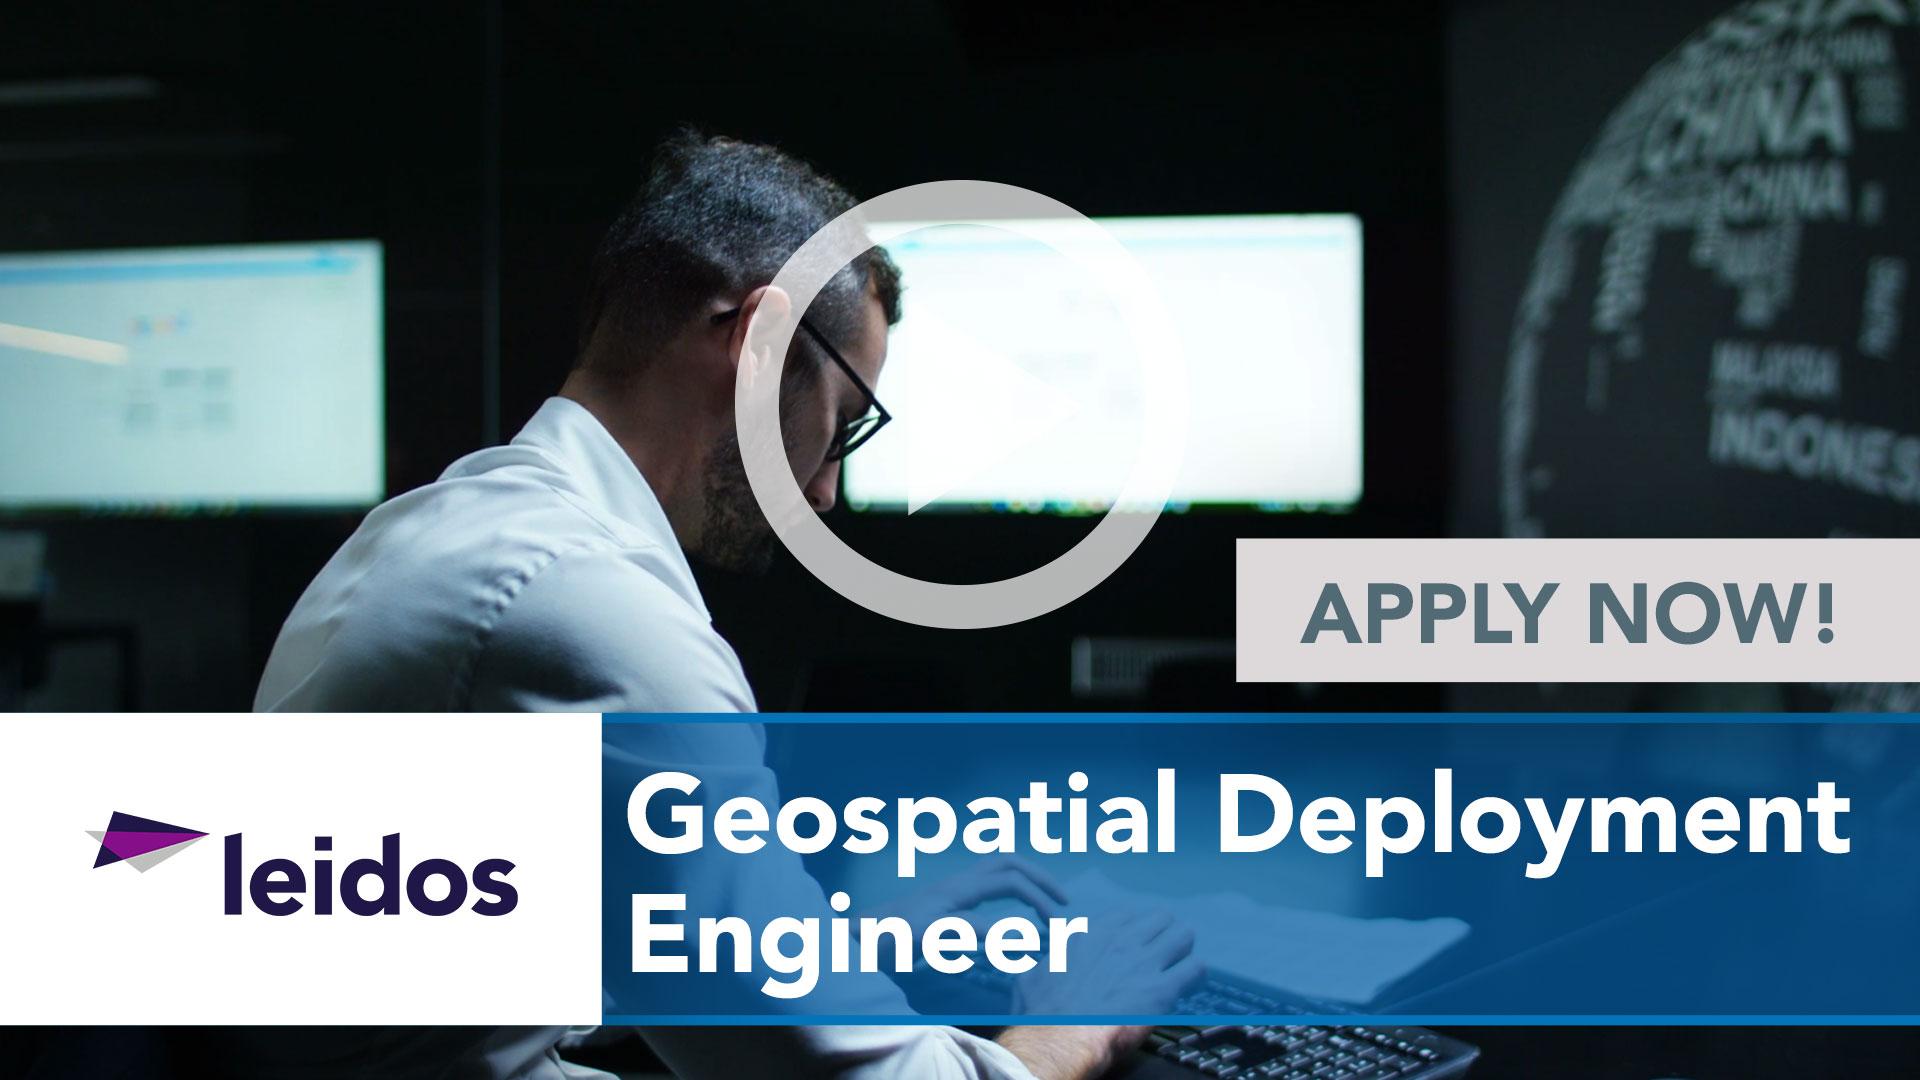 Watch our careers video for available job opening Geospatial Deployment Engineer in National Capital Region with